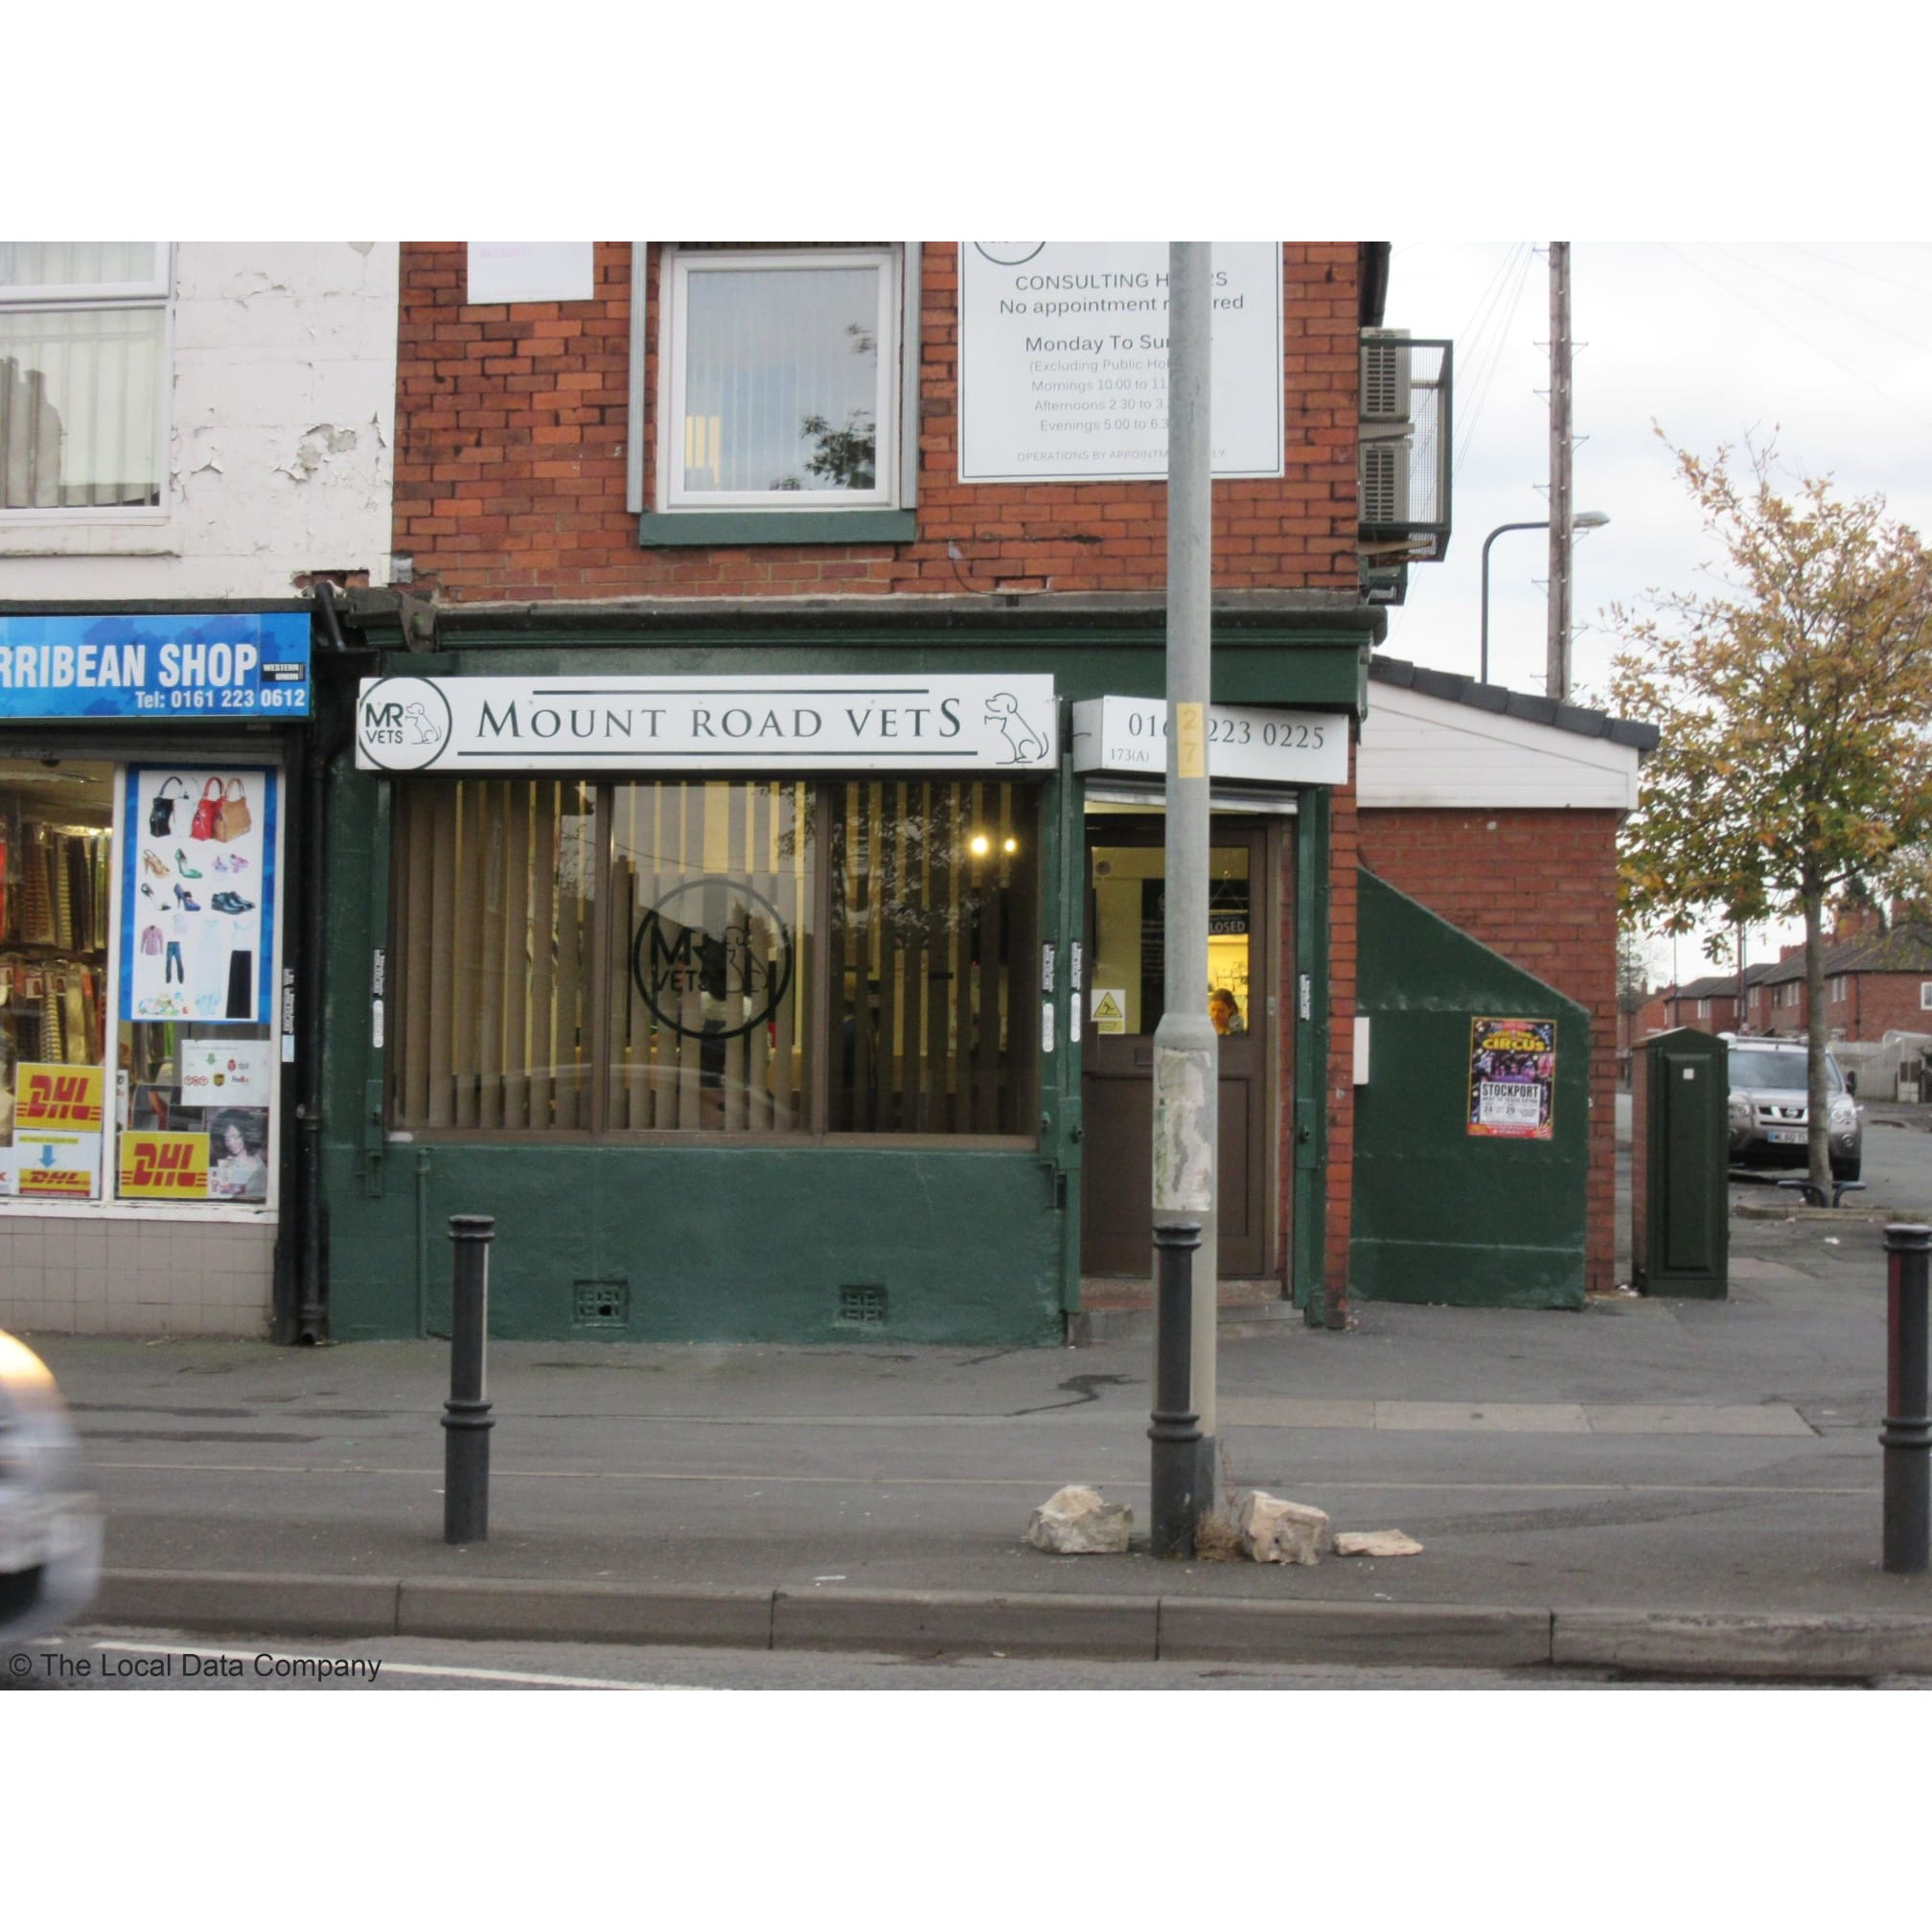 image of Mount Road Vets